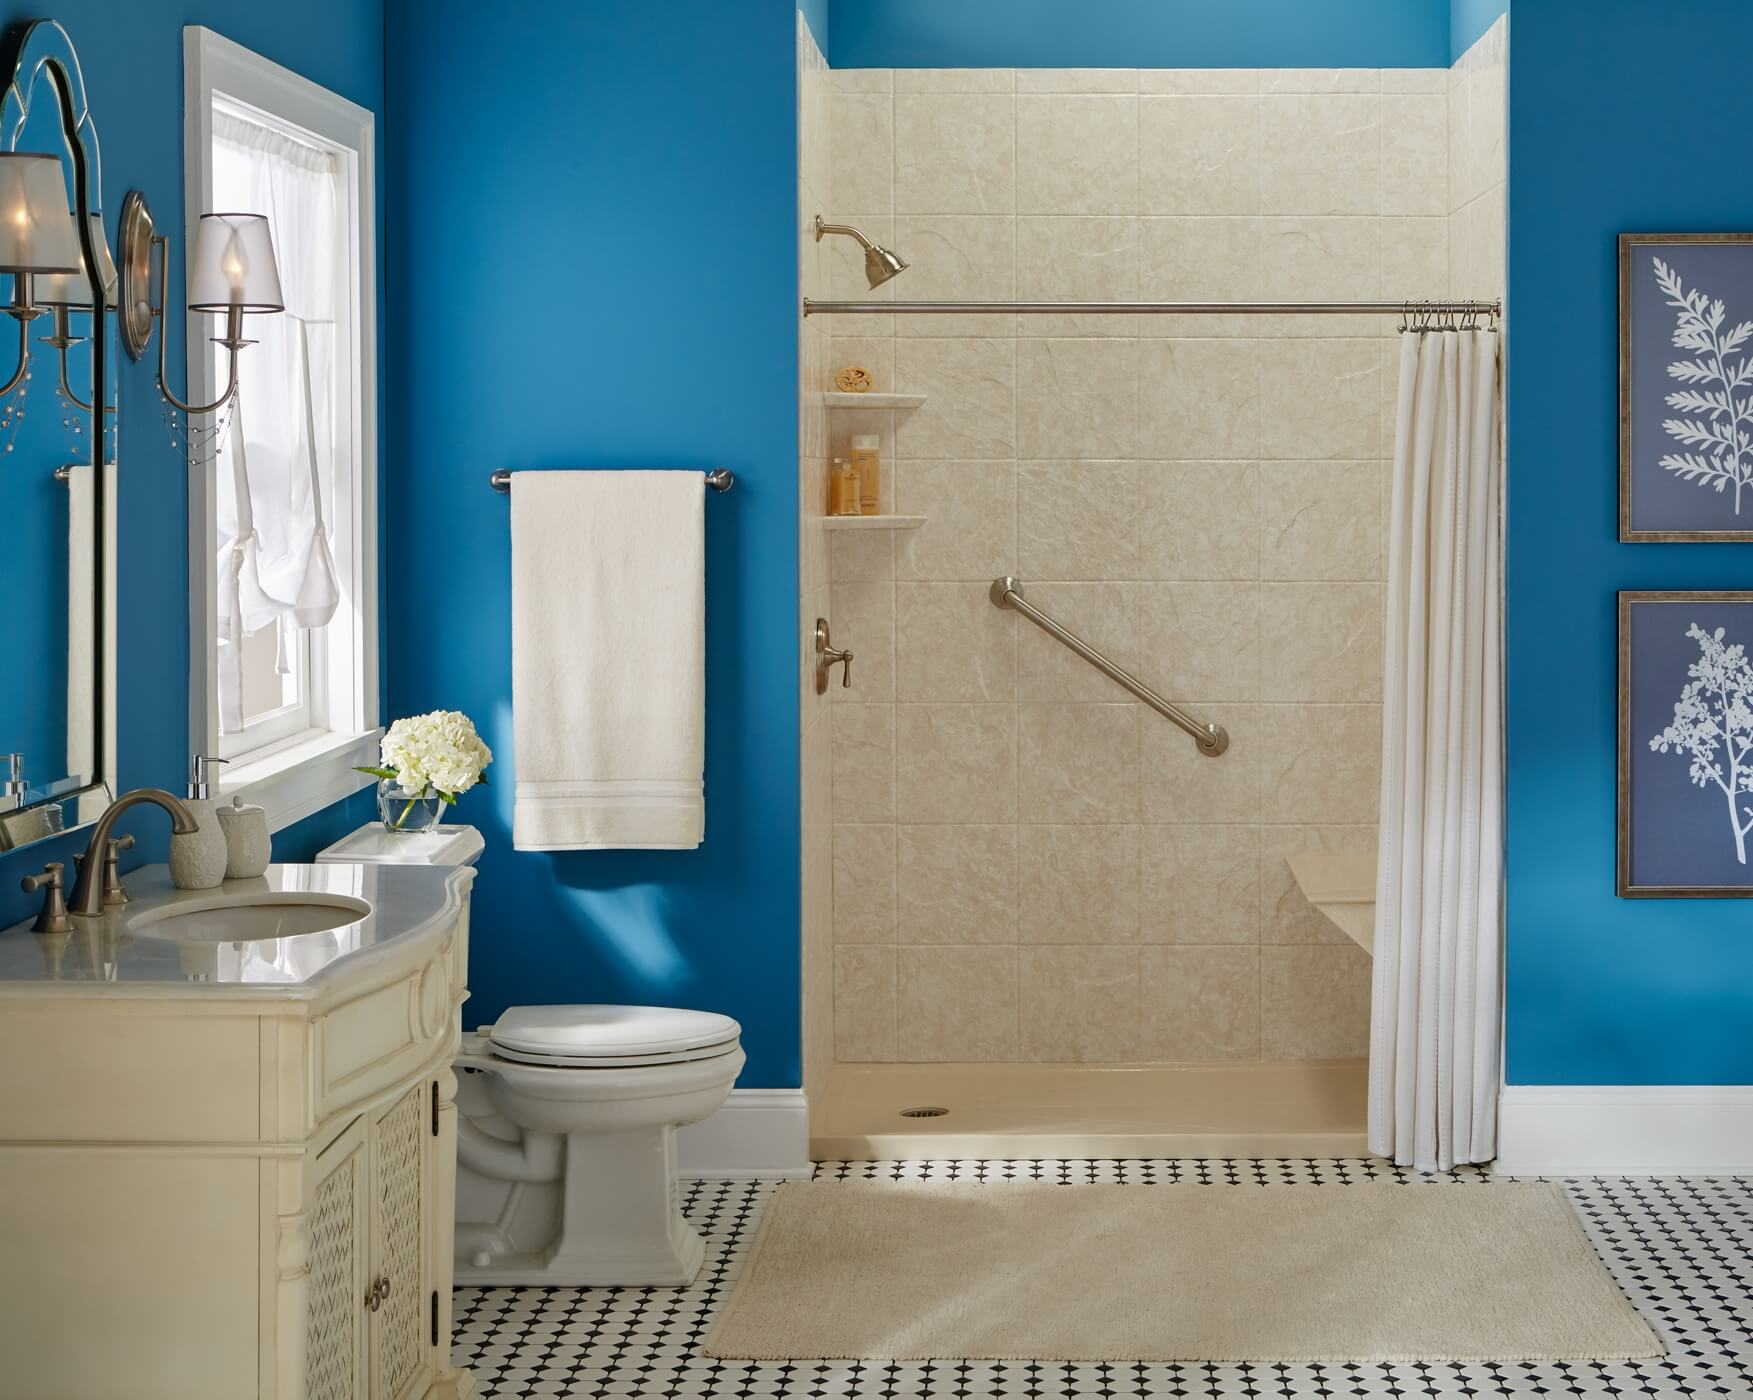 inspirational design wraps liner remodel redo contemporary of bathroom simple bathrooms remodeling acrylic designs bath size full shower